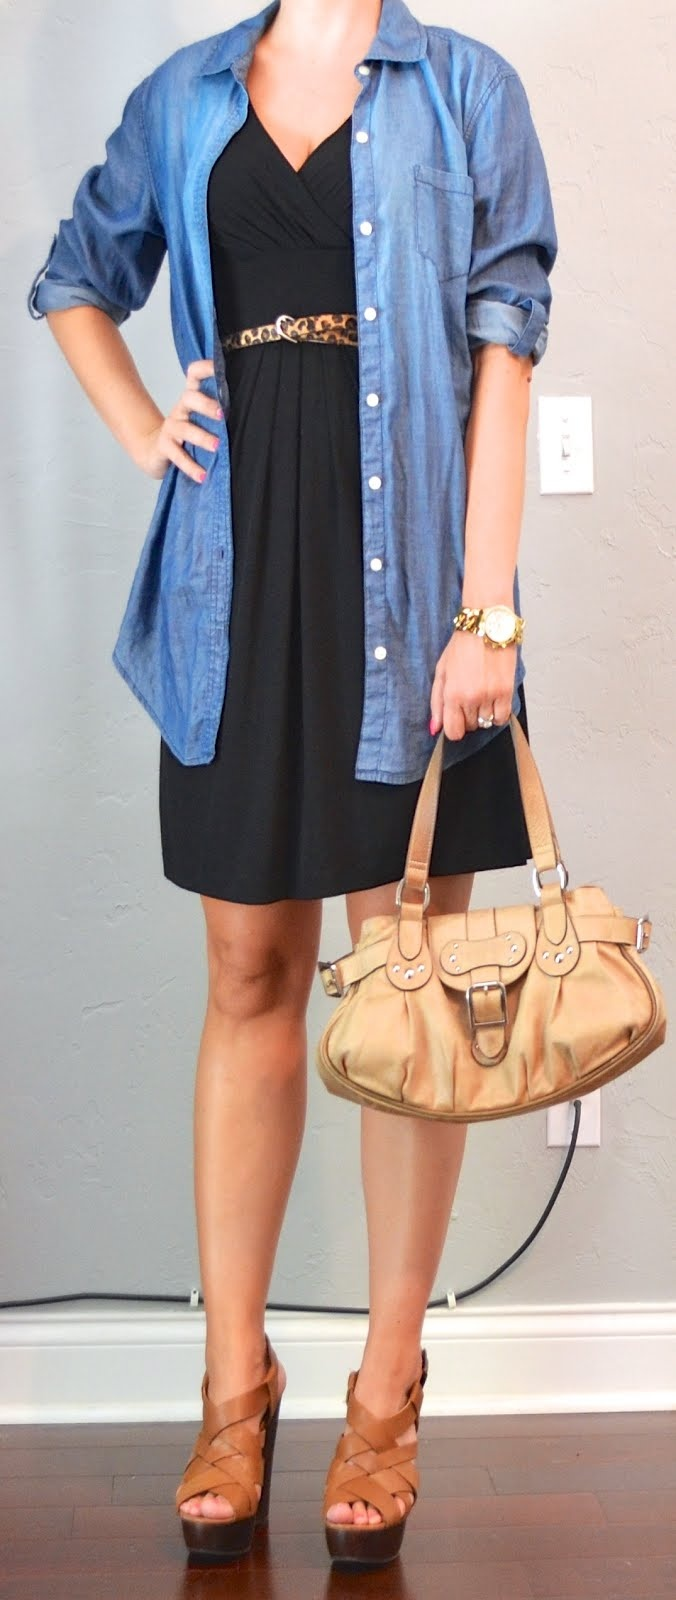 outfit post: black dress, chambray shirt, leopard belt | Outfit Posts Dynamic